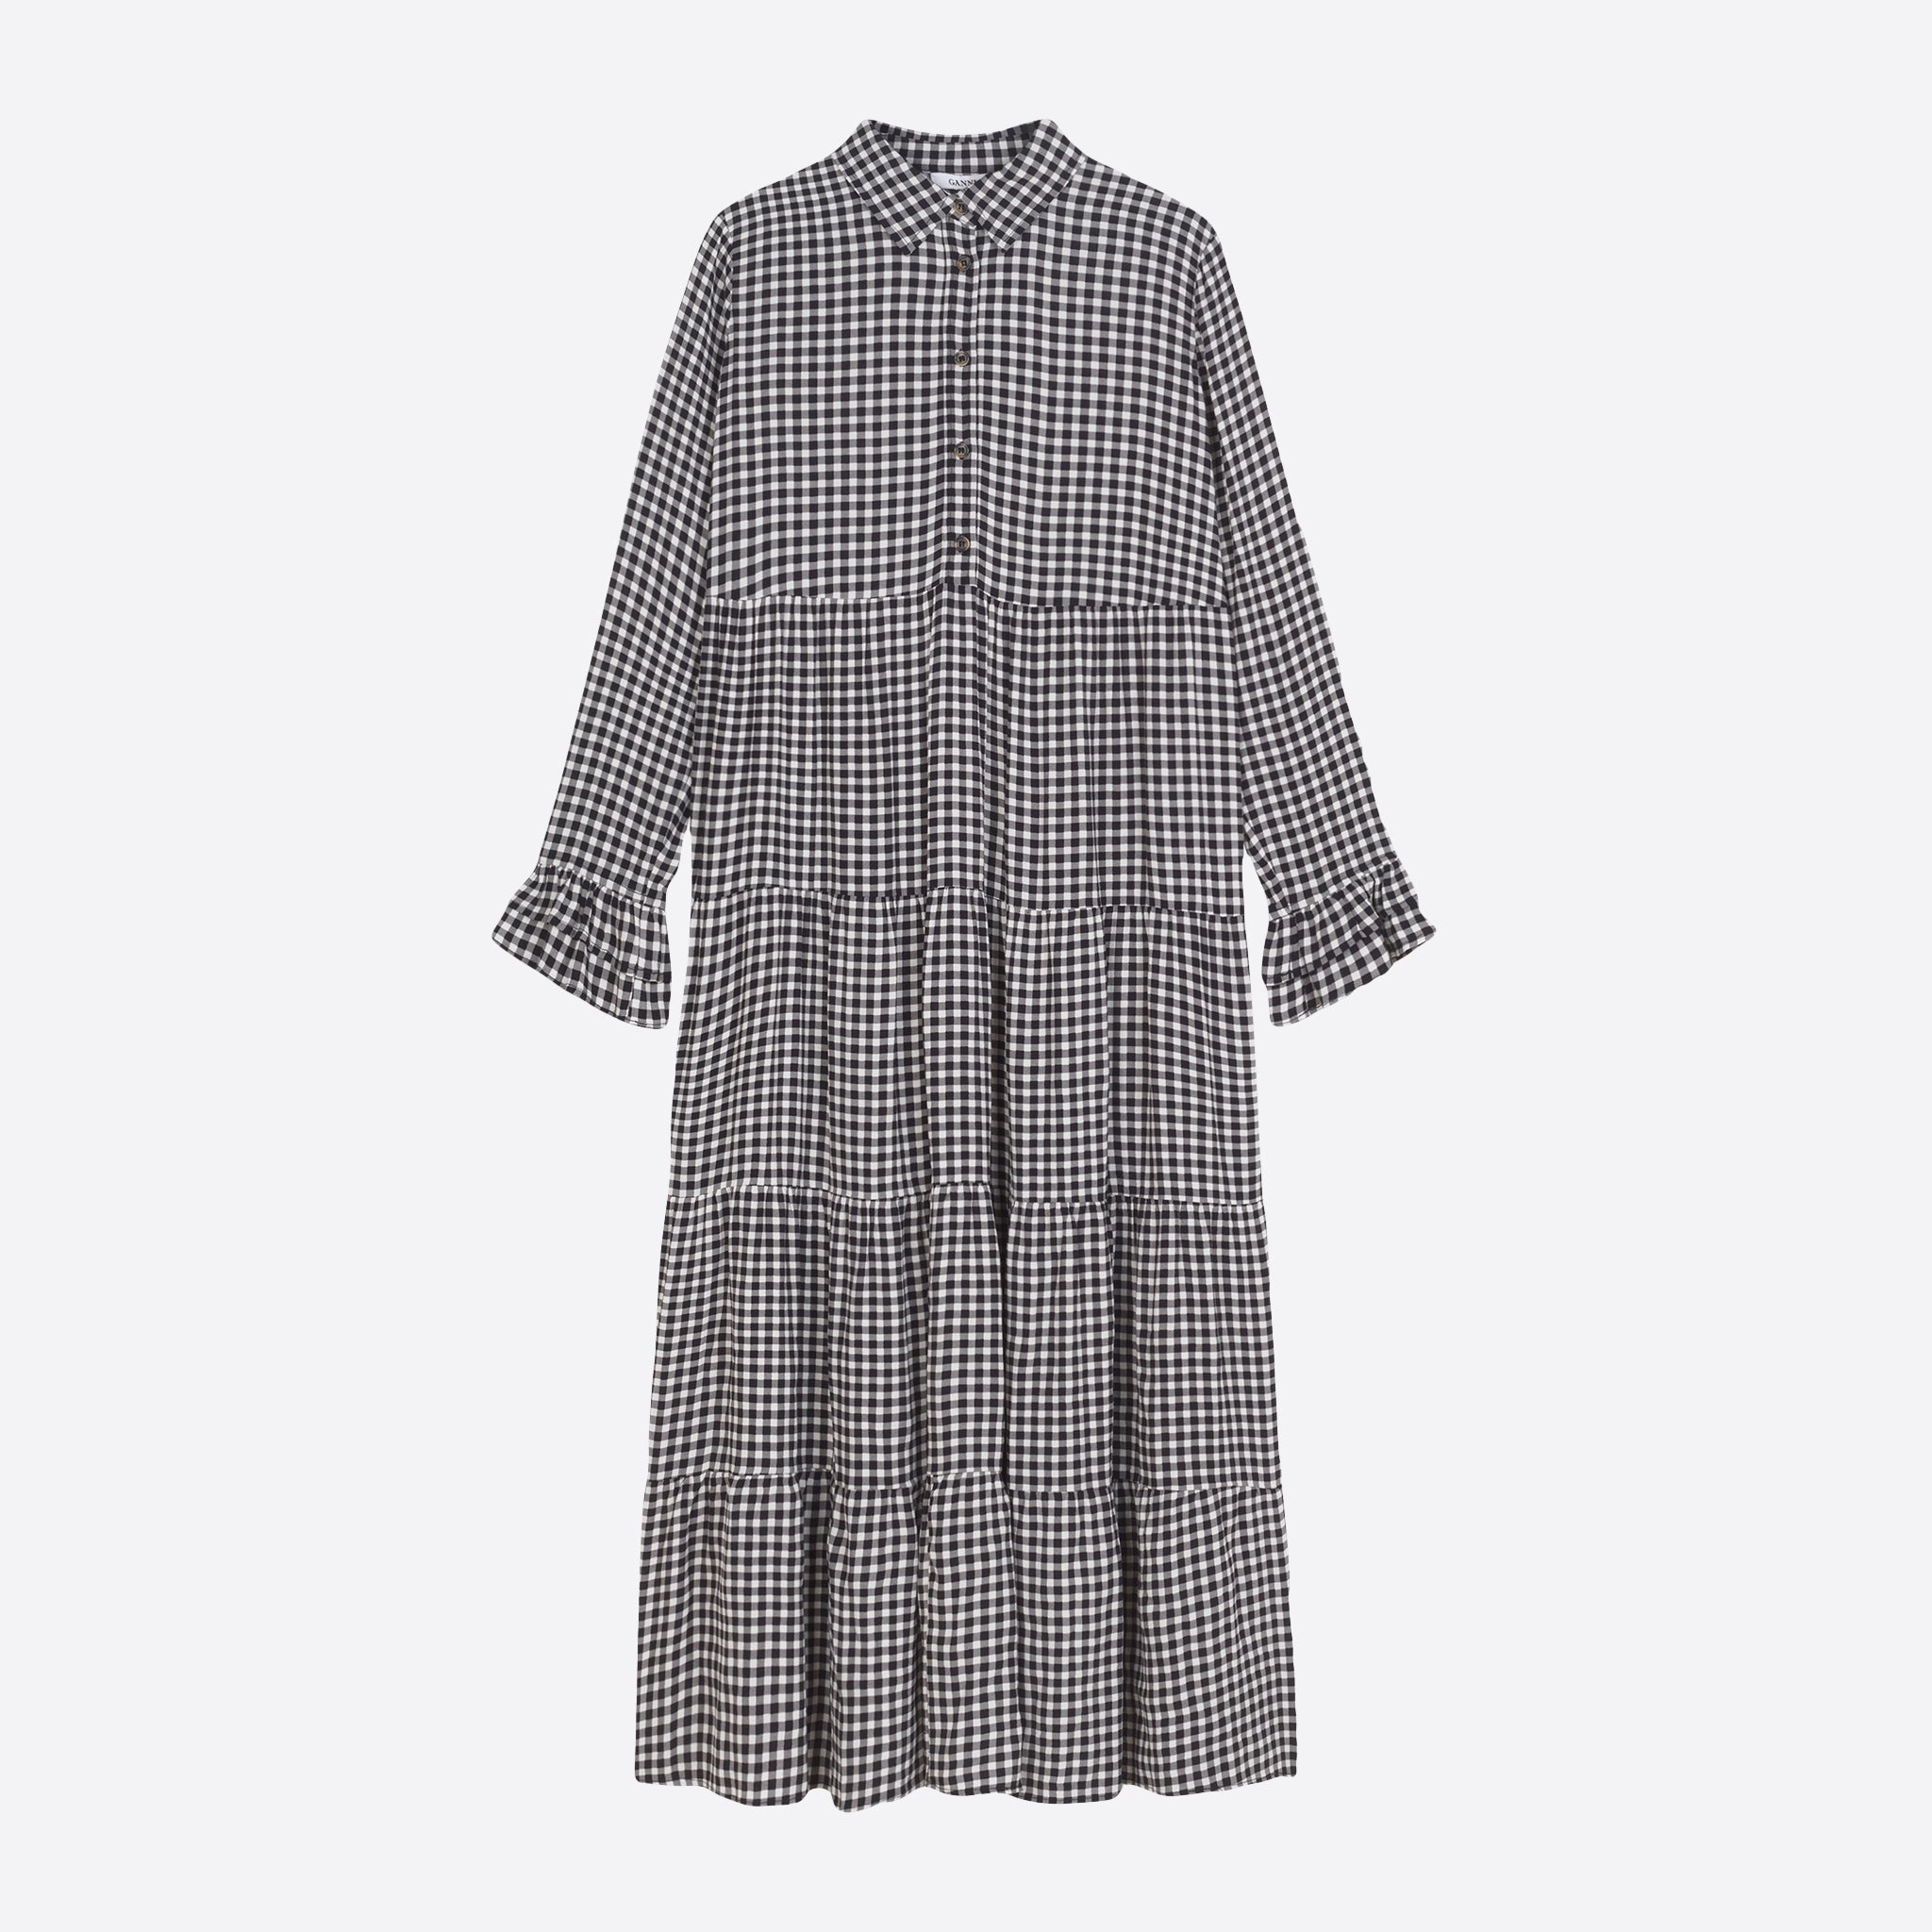 Ganni Printed Crepe Layer Dress in Black Gingham